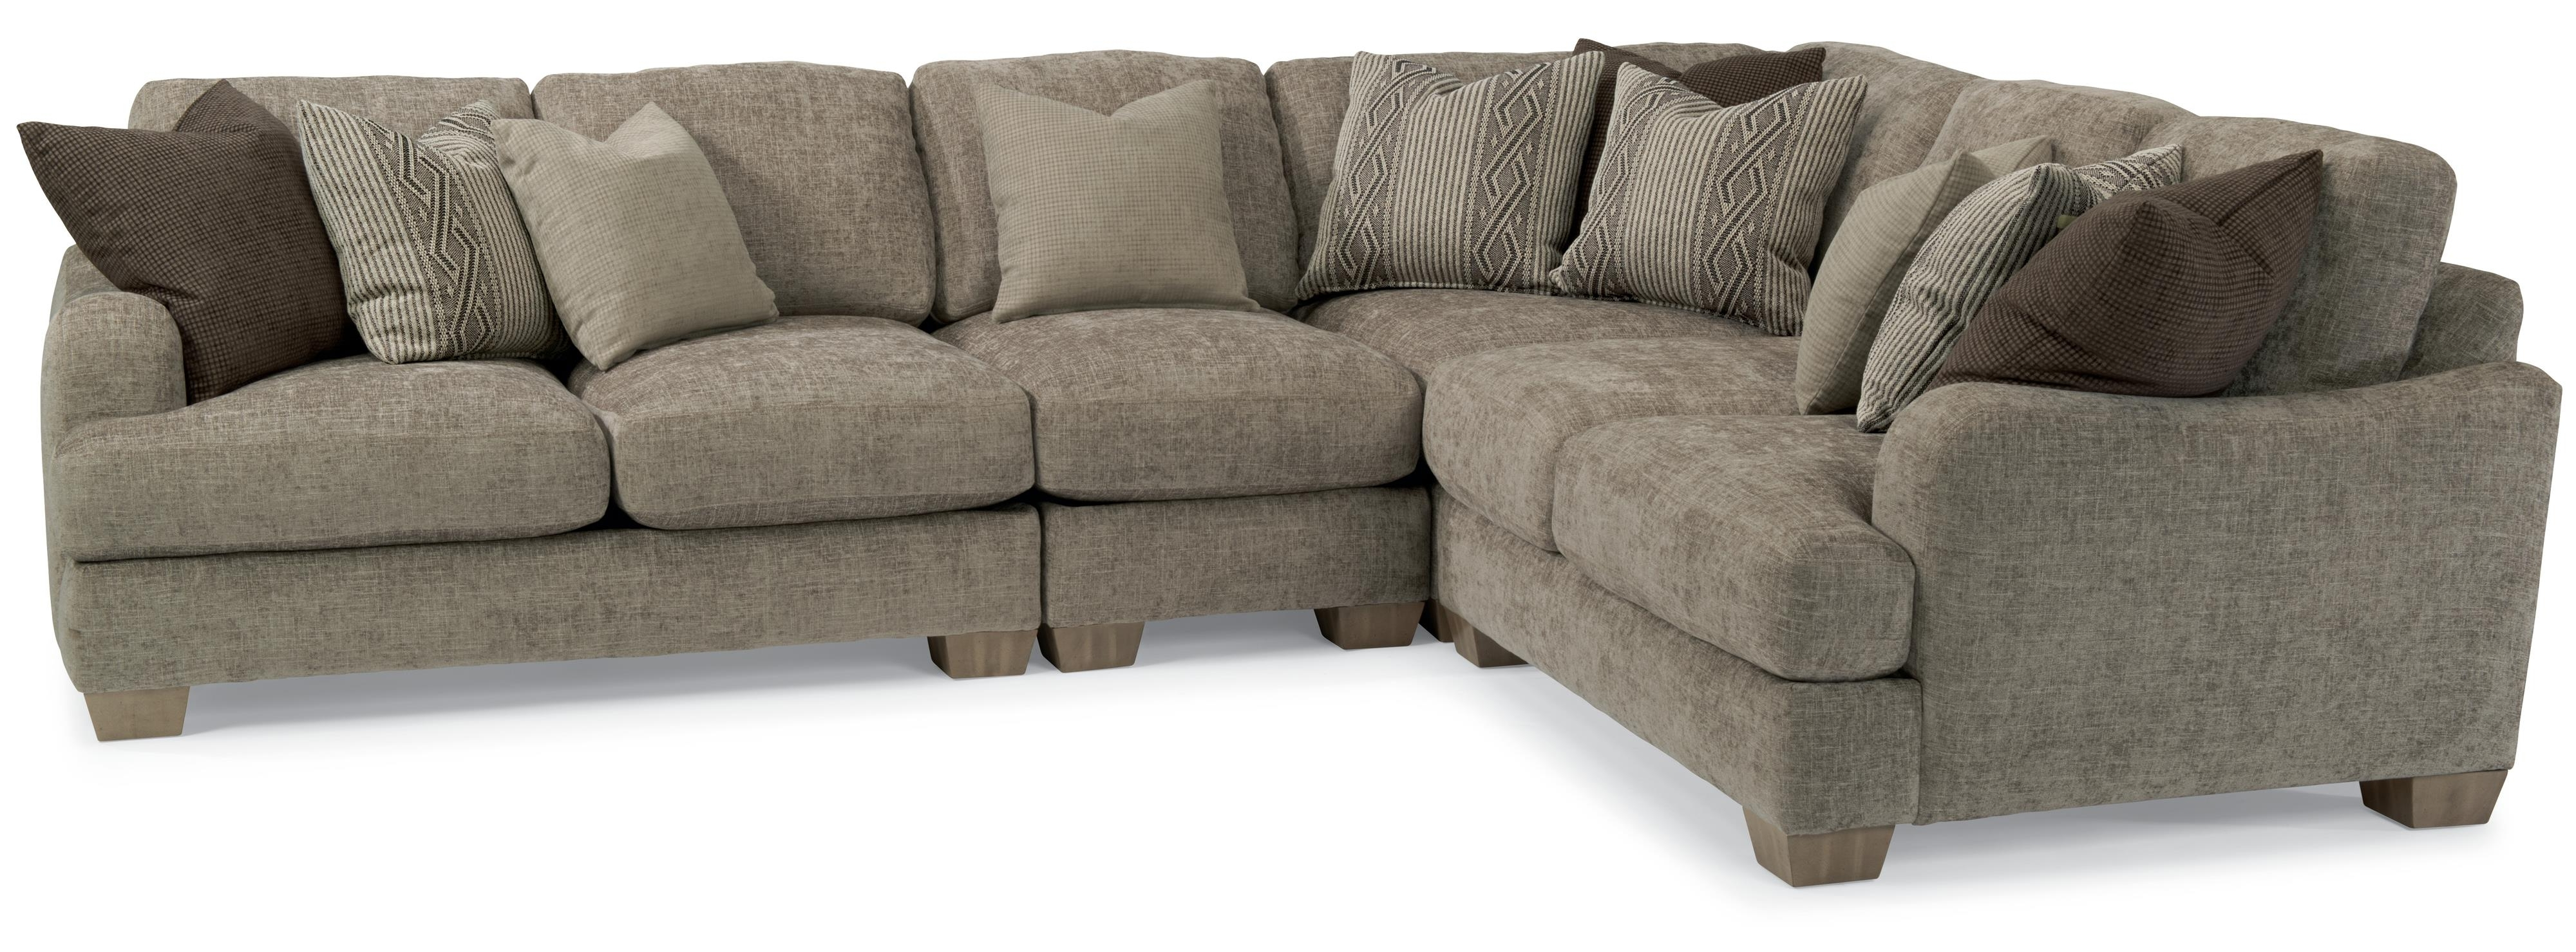 Vanessa Sectional Sofa With Loose Pillow Backflexsteel With Fashionable Kansas City Sectional Sofas (View 14 of 15)